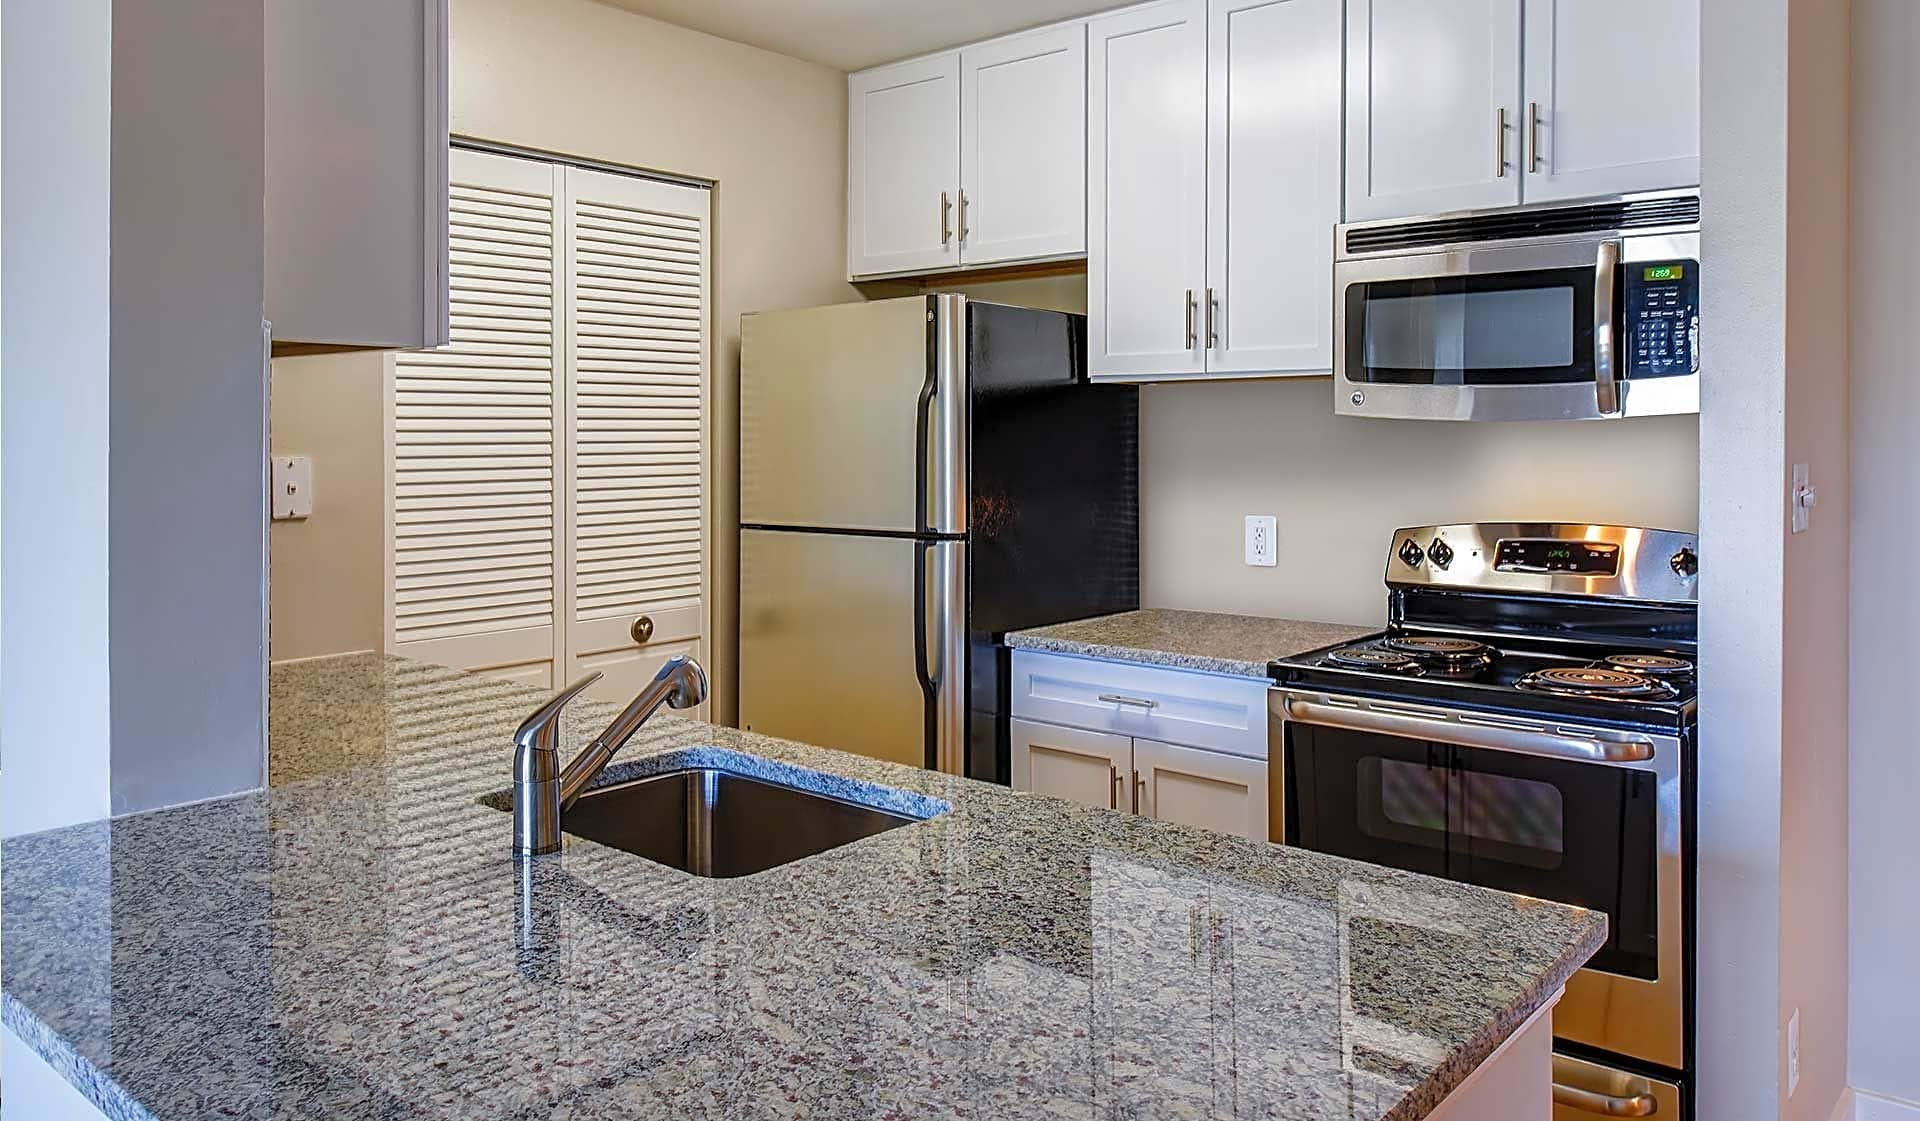 GE Clean Steel appliances and granite countertops in the Cedarcrest Premier